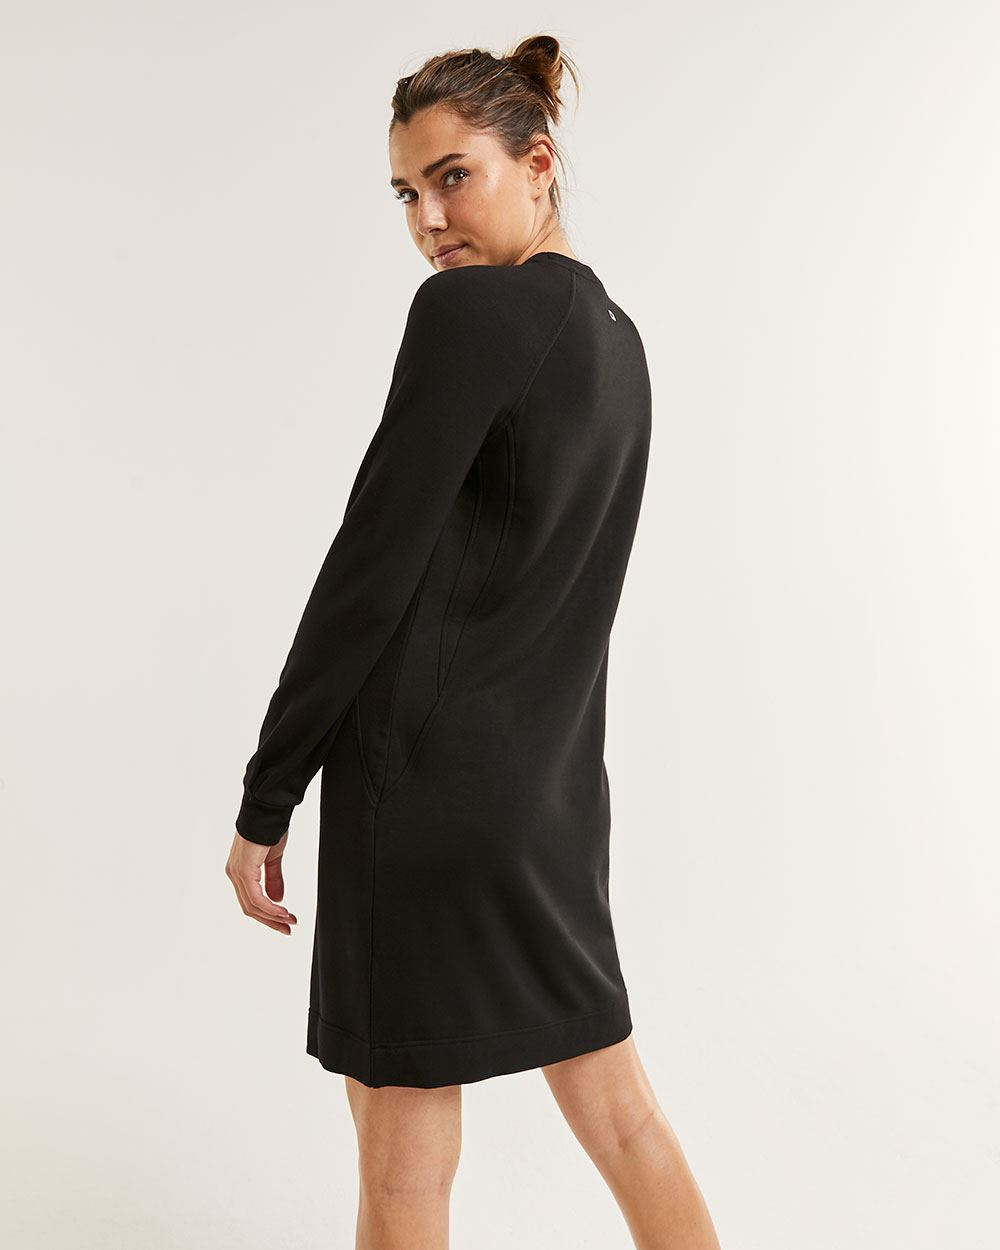 Long Sleeve Crew Neck Fleece Dress Hyba